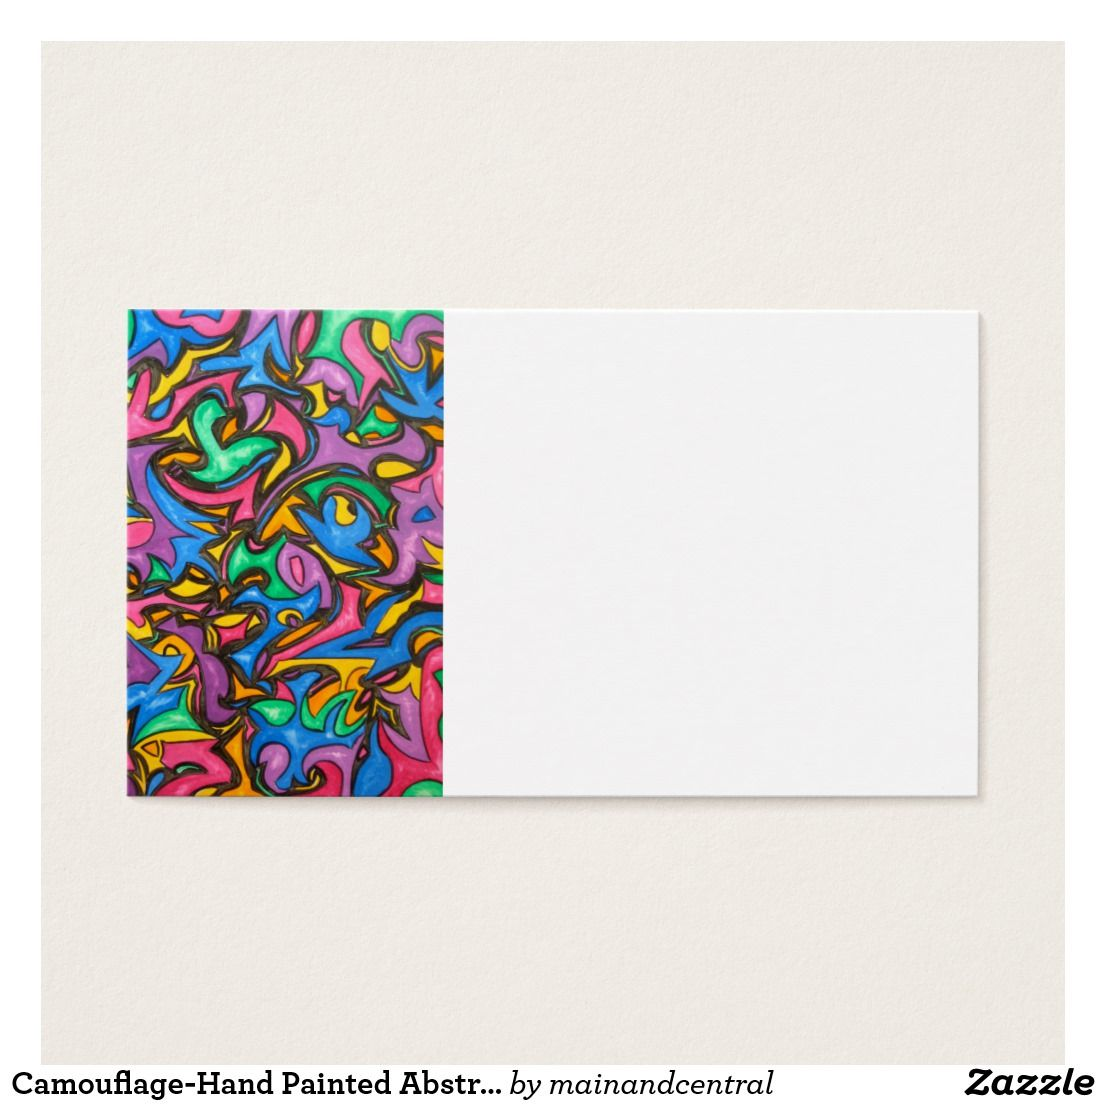 Camouflage-Hand Painted Abstract Art Business Card | Business cards